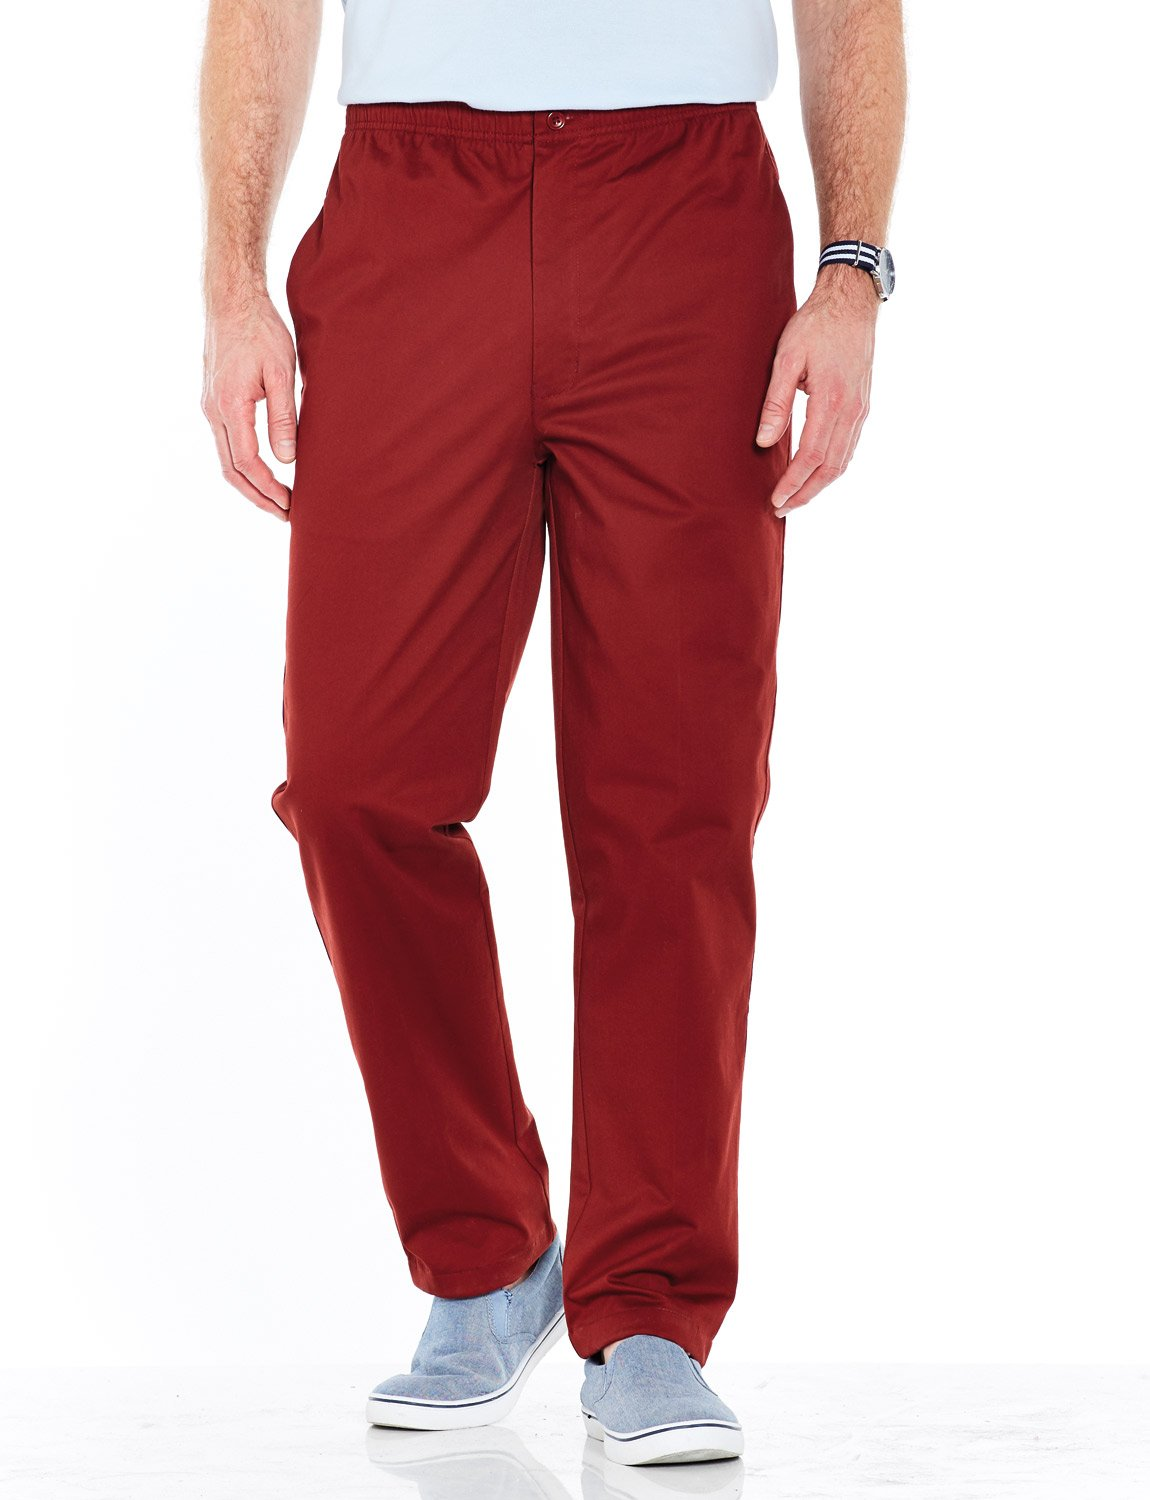 Mens Cotton Elasticated Rugby Trousers with Drawcord Chums